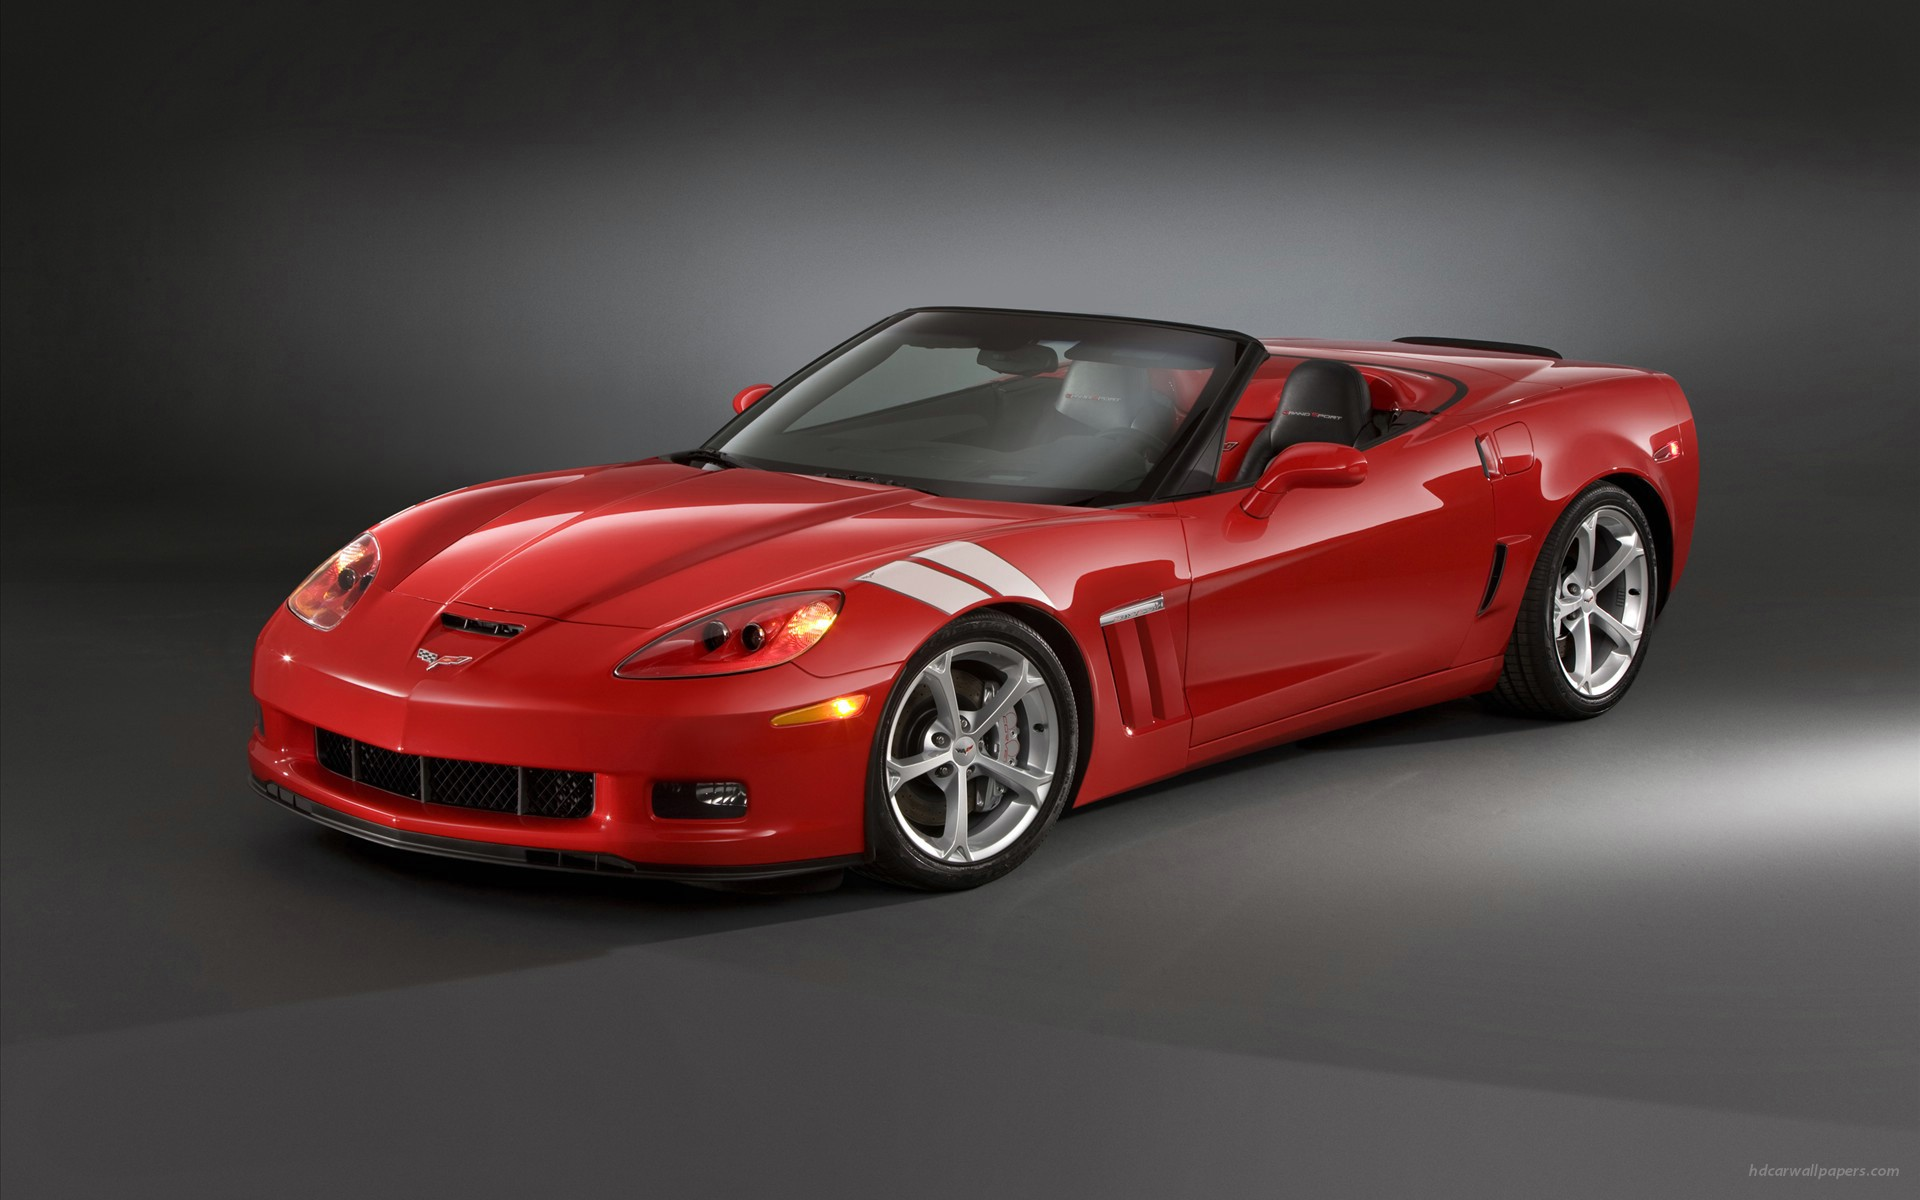 Chevrolet Corvette Grand Sport 1201.38 Kb